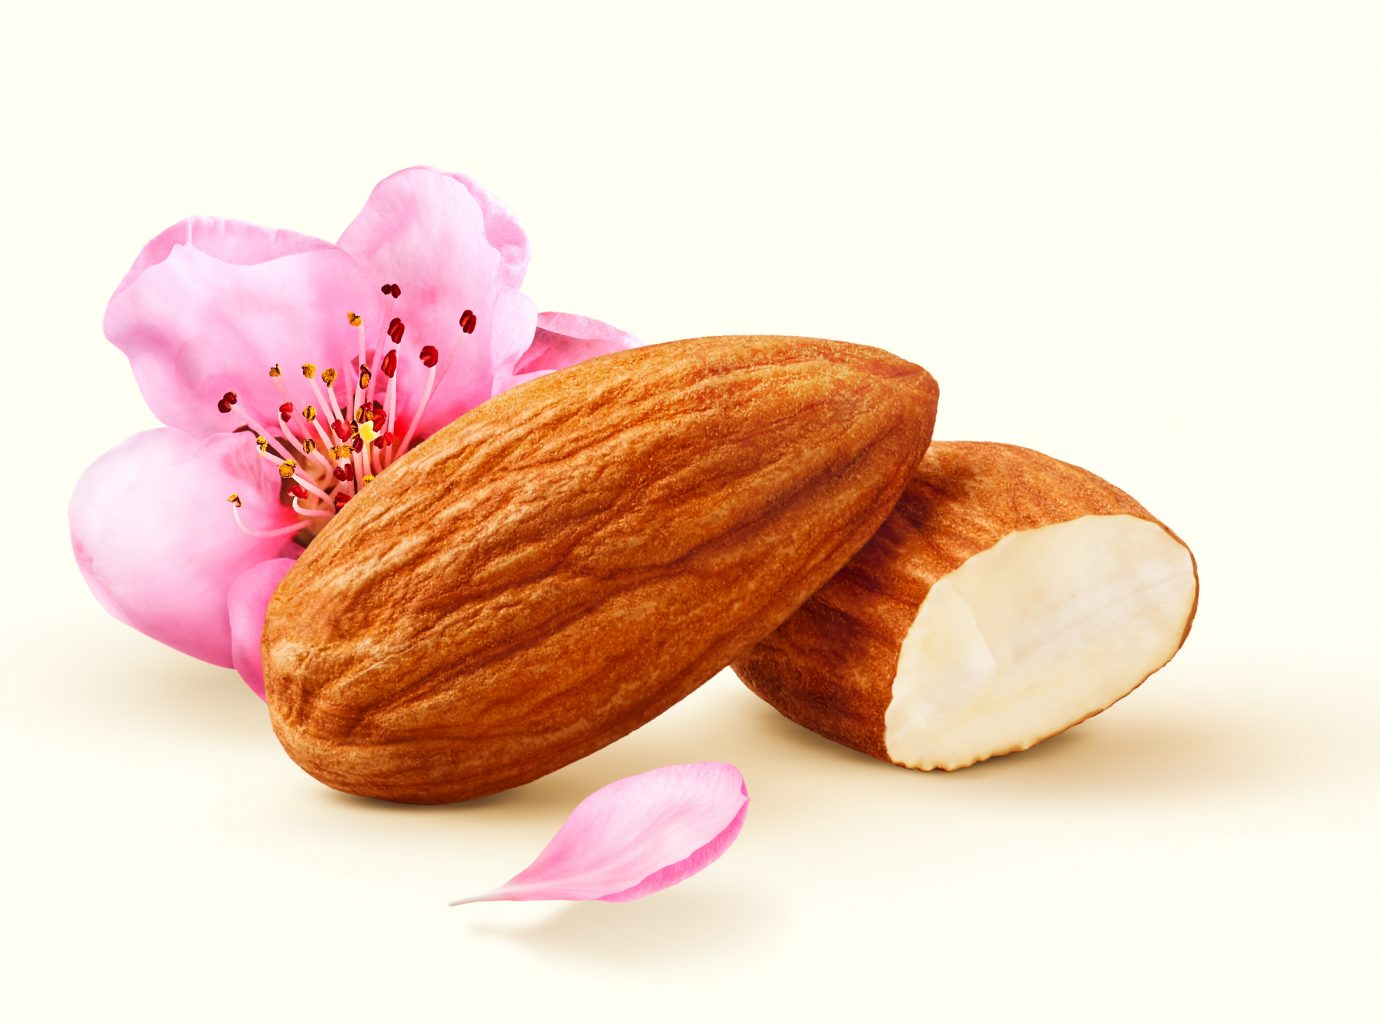 Pair of almonds with flower as decoration for the packaging photography. confectionery